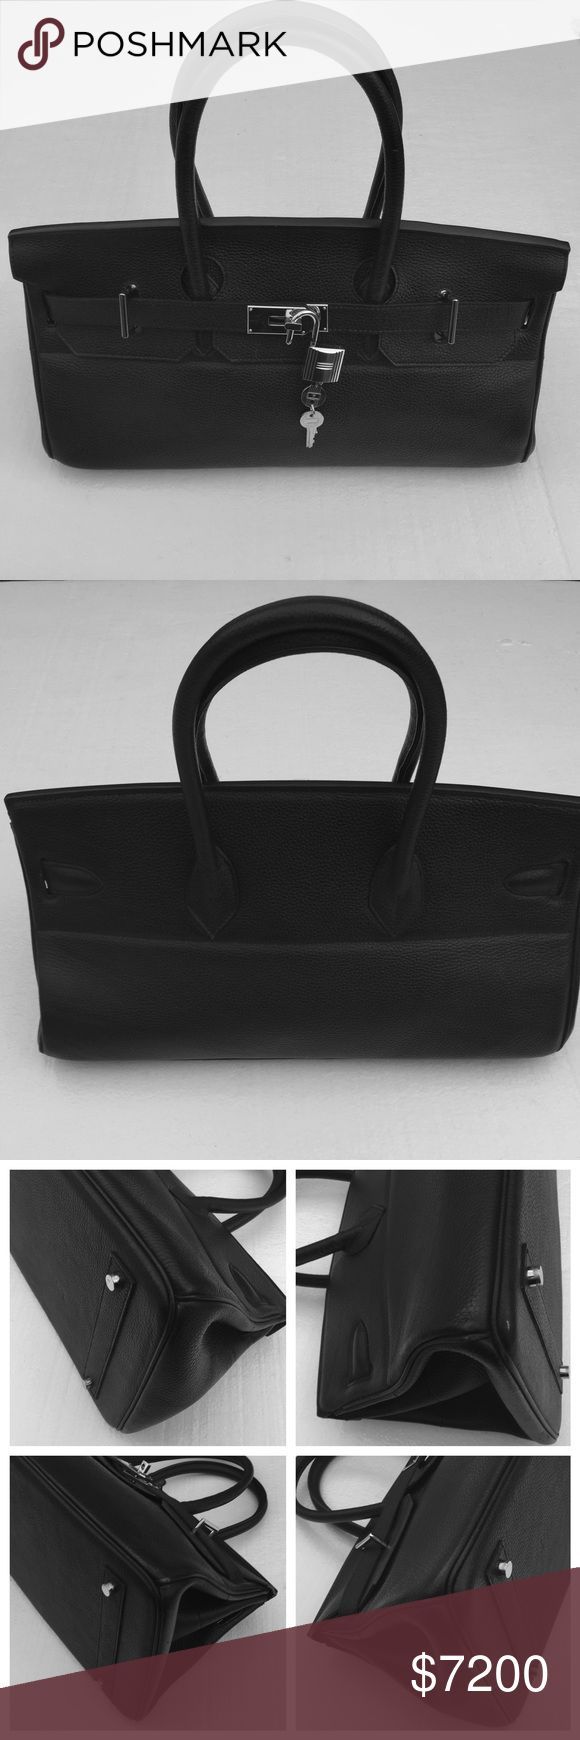 Authentic HERMES Birkin jpg 42cm Satchel Handbag This is an authentic Hermes Birkin jpg 42cm handbag. It's black Clemence (pebble) leather with palladium hardware. This bag is in excellent used condition with very little signs of use (please see photos). Dust bag, lock with (two) keys included. All photos are of actual bag. If you have concerns or questions regarding authenticity please use the concierge service with Poshmark for authenticity guaranteed. ❤️ Hermes Bags Satchels